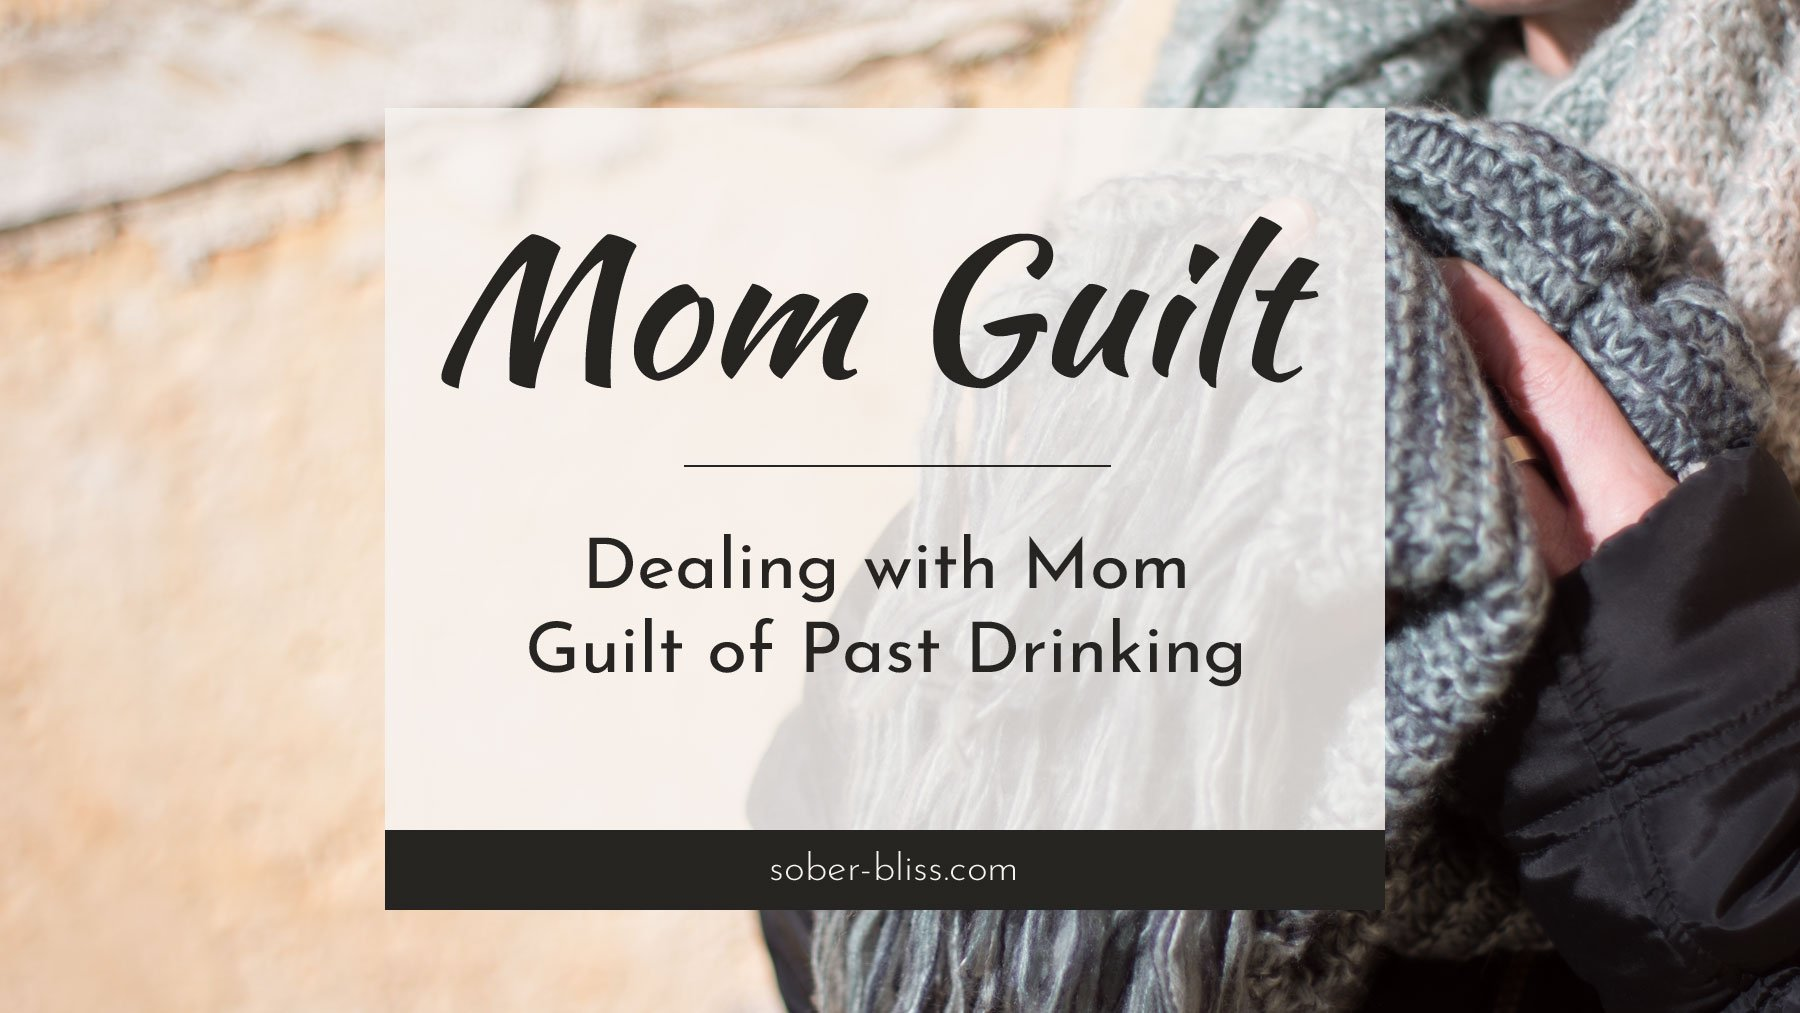 mom guilt from past drinking